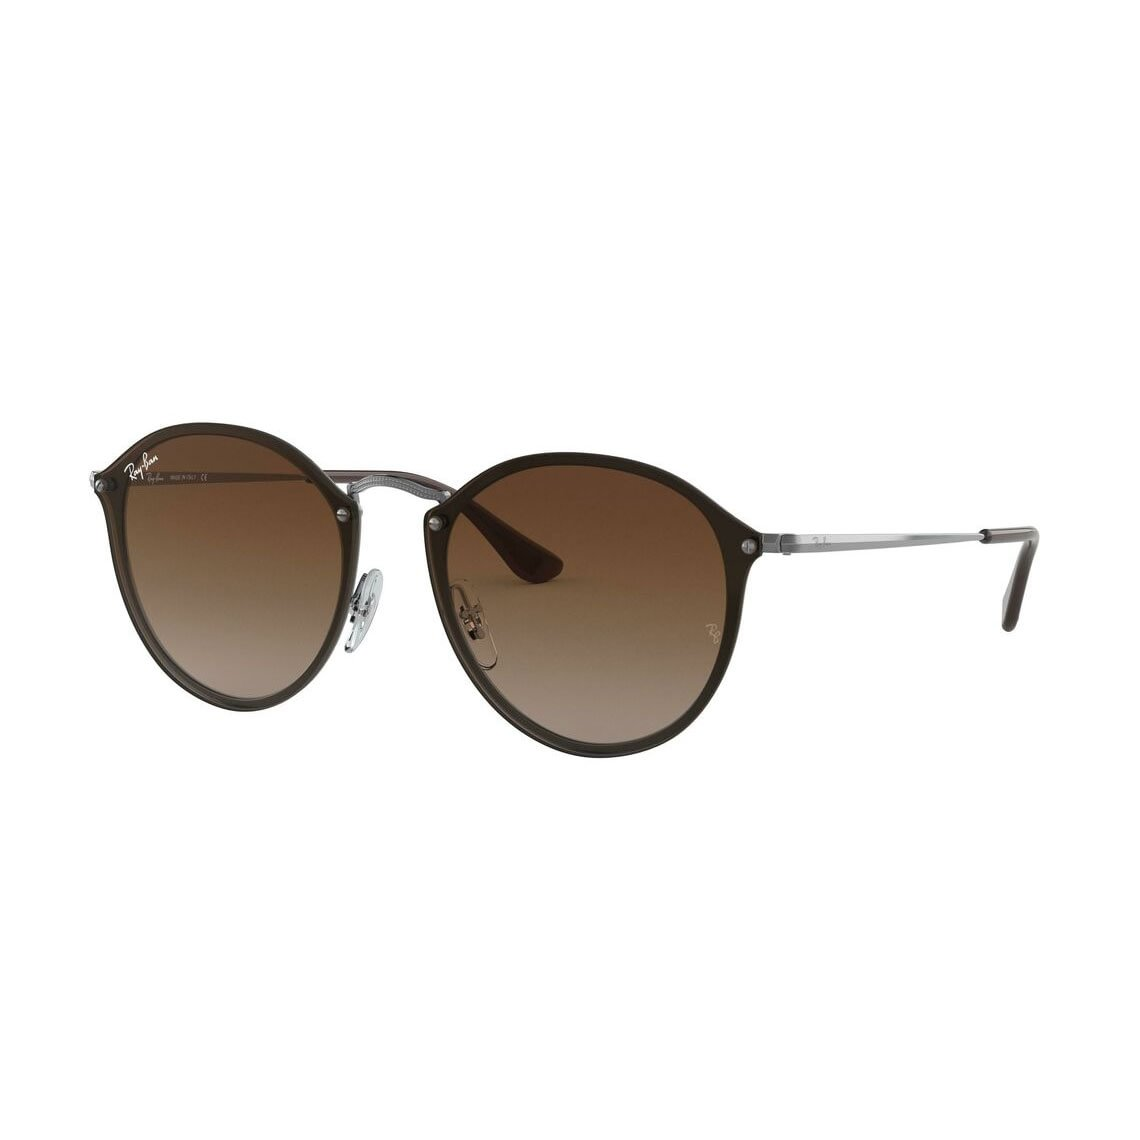 Ray-Ban Blaze round RB3574N 004/13 59